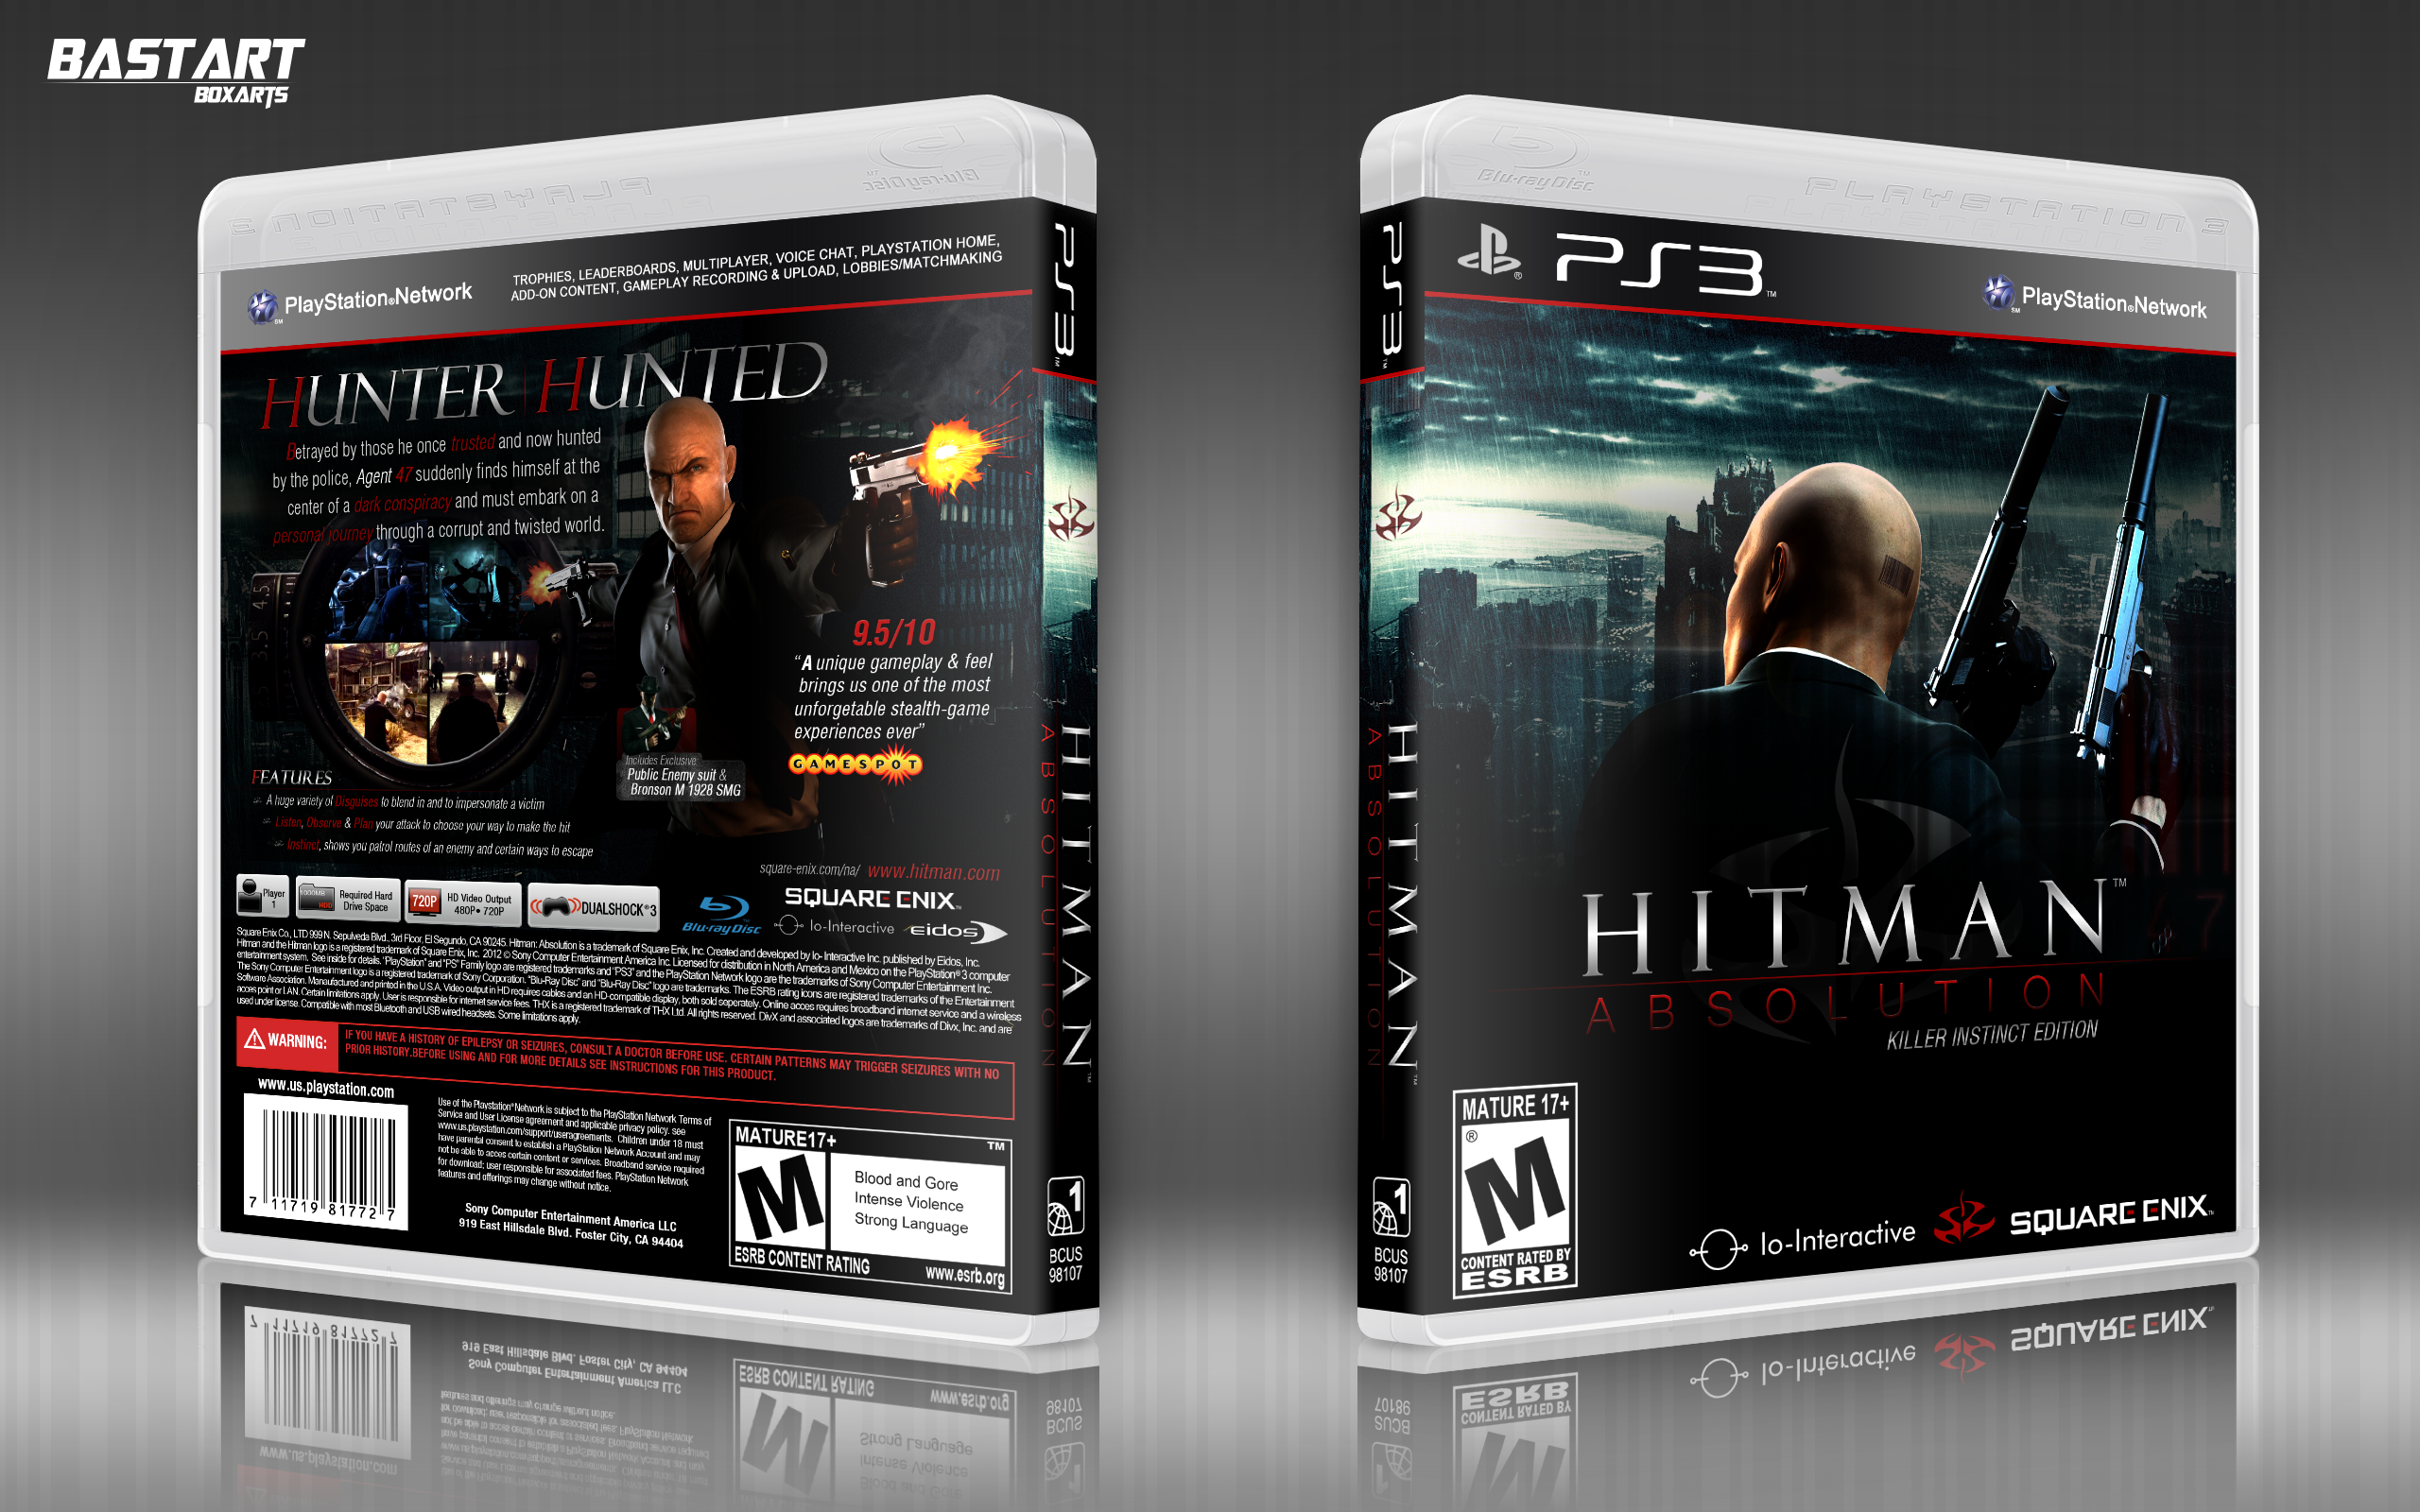 Hitman Absolution: Killer Instinct Edition box cover